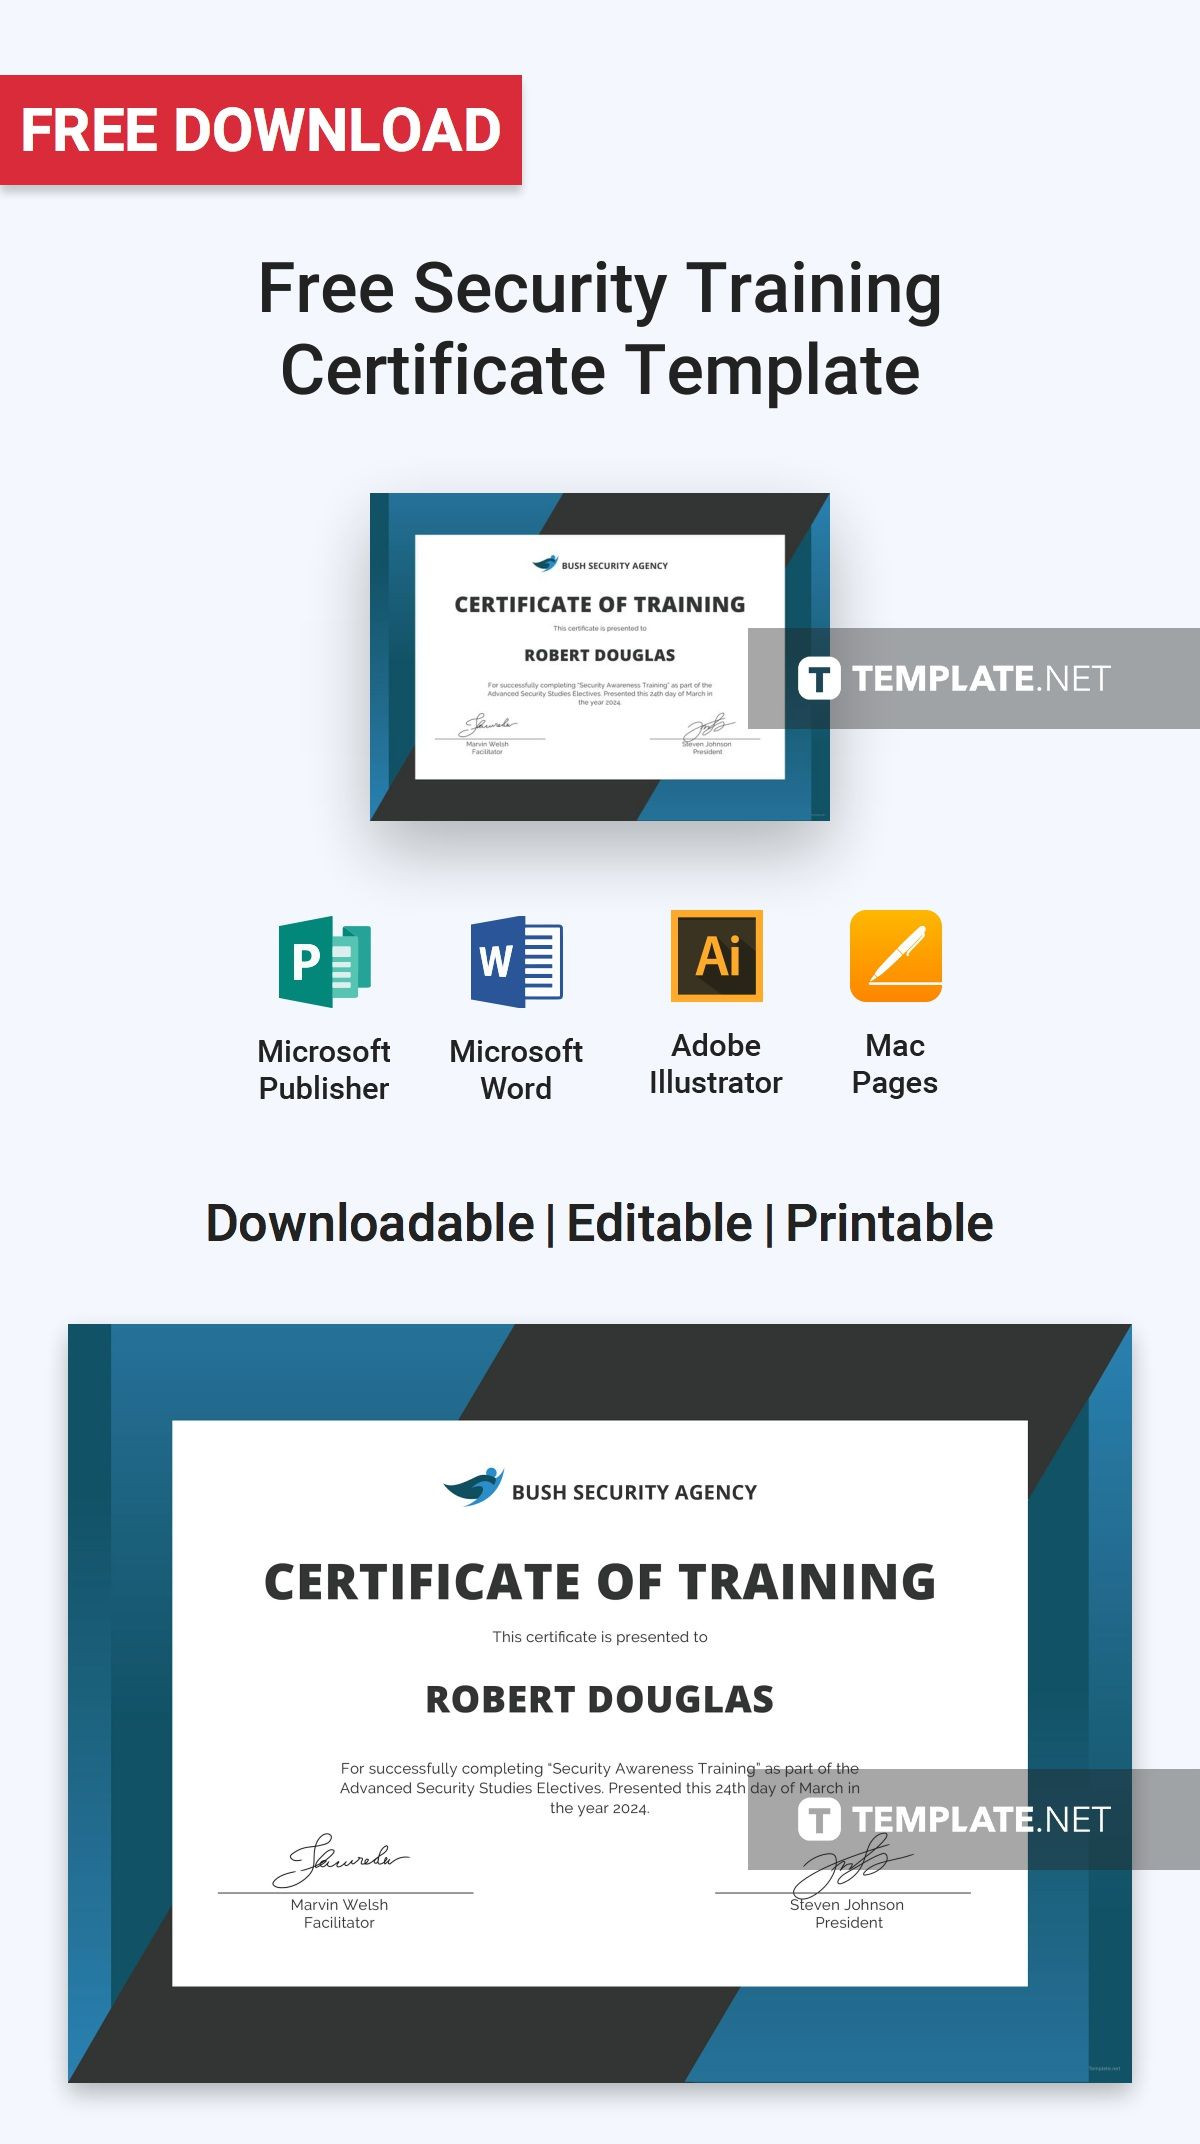 Free Security Training Certificate